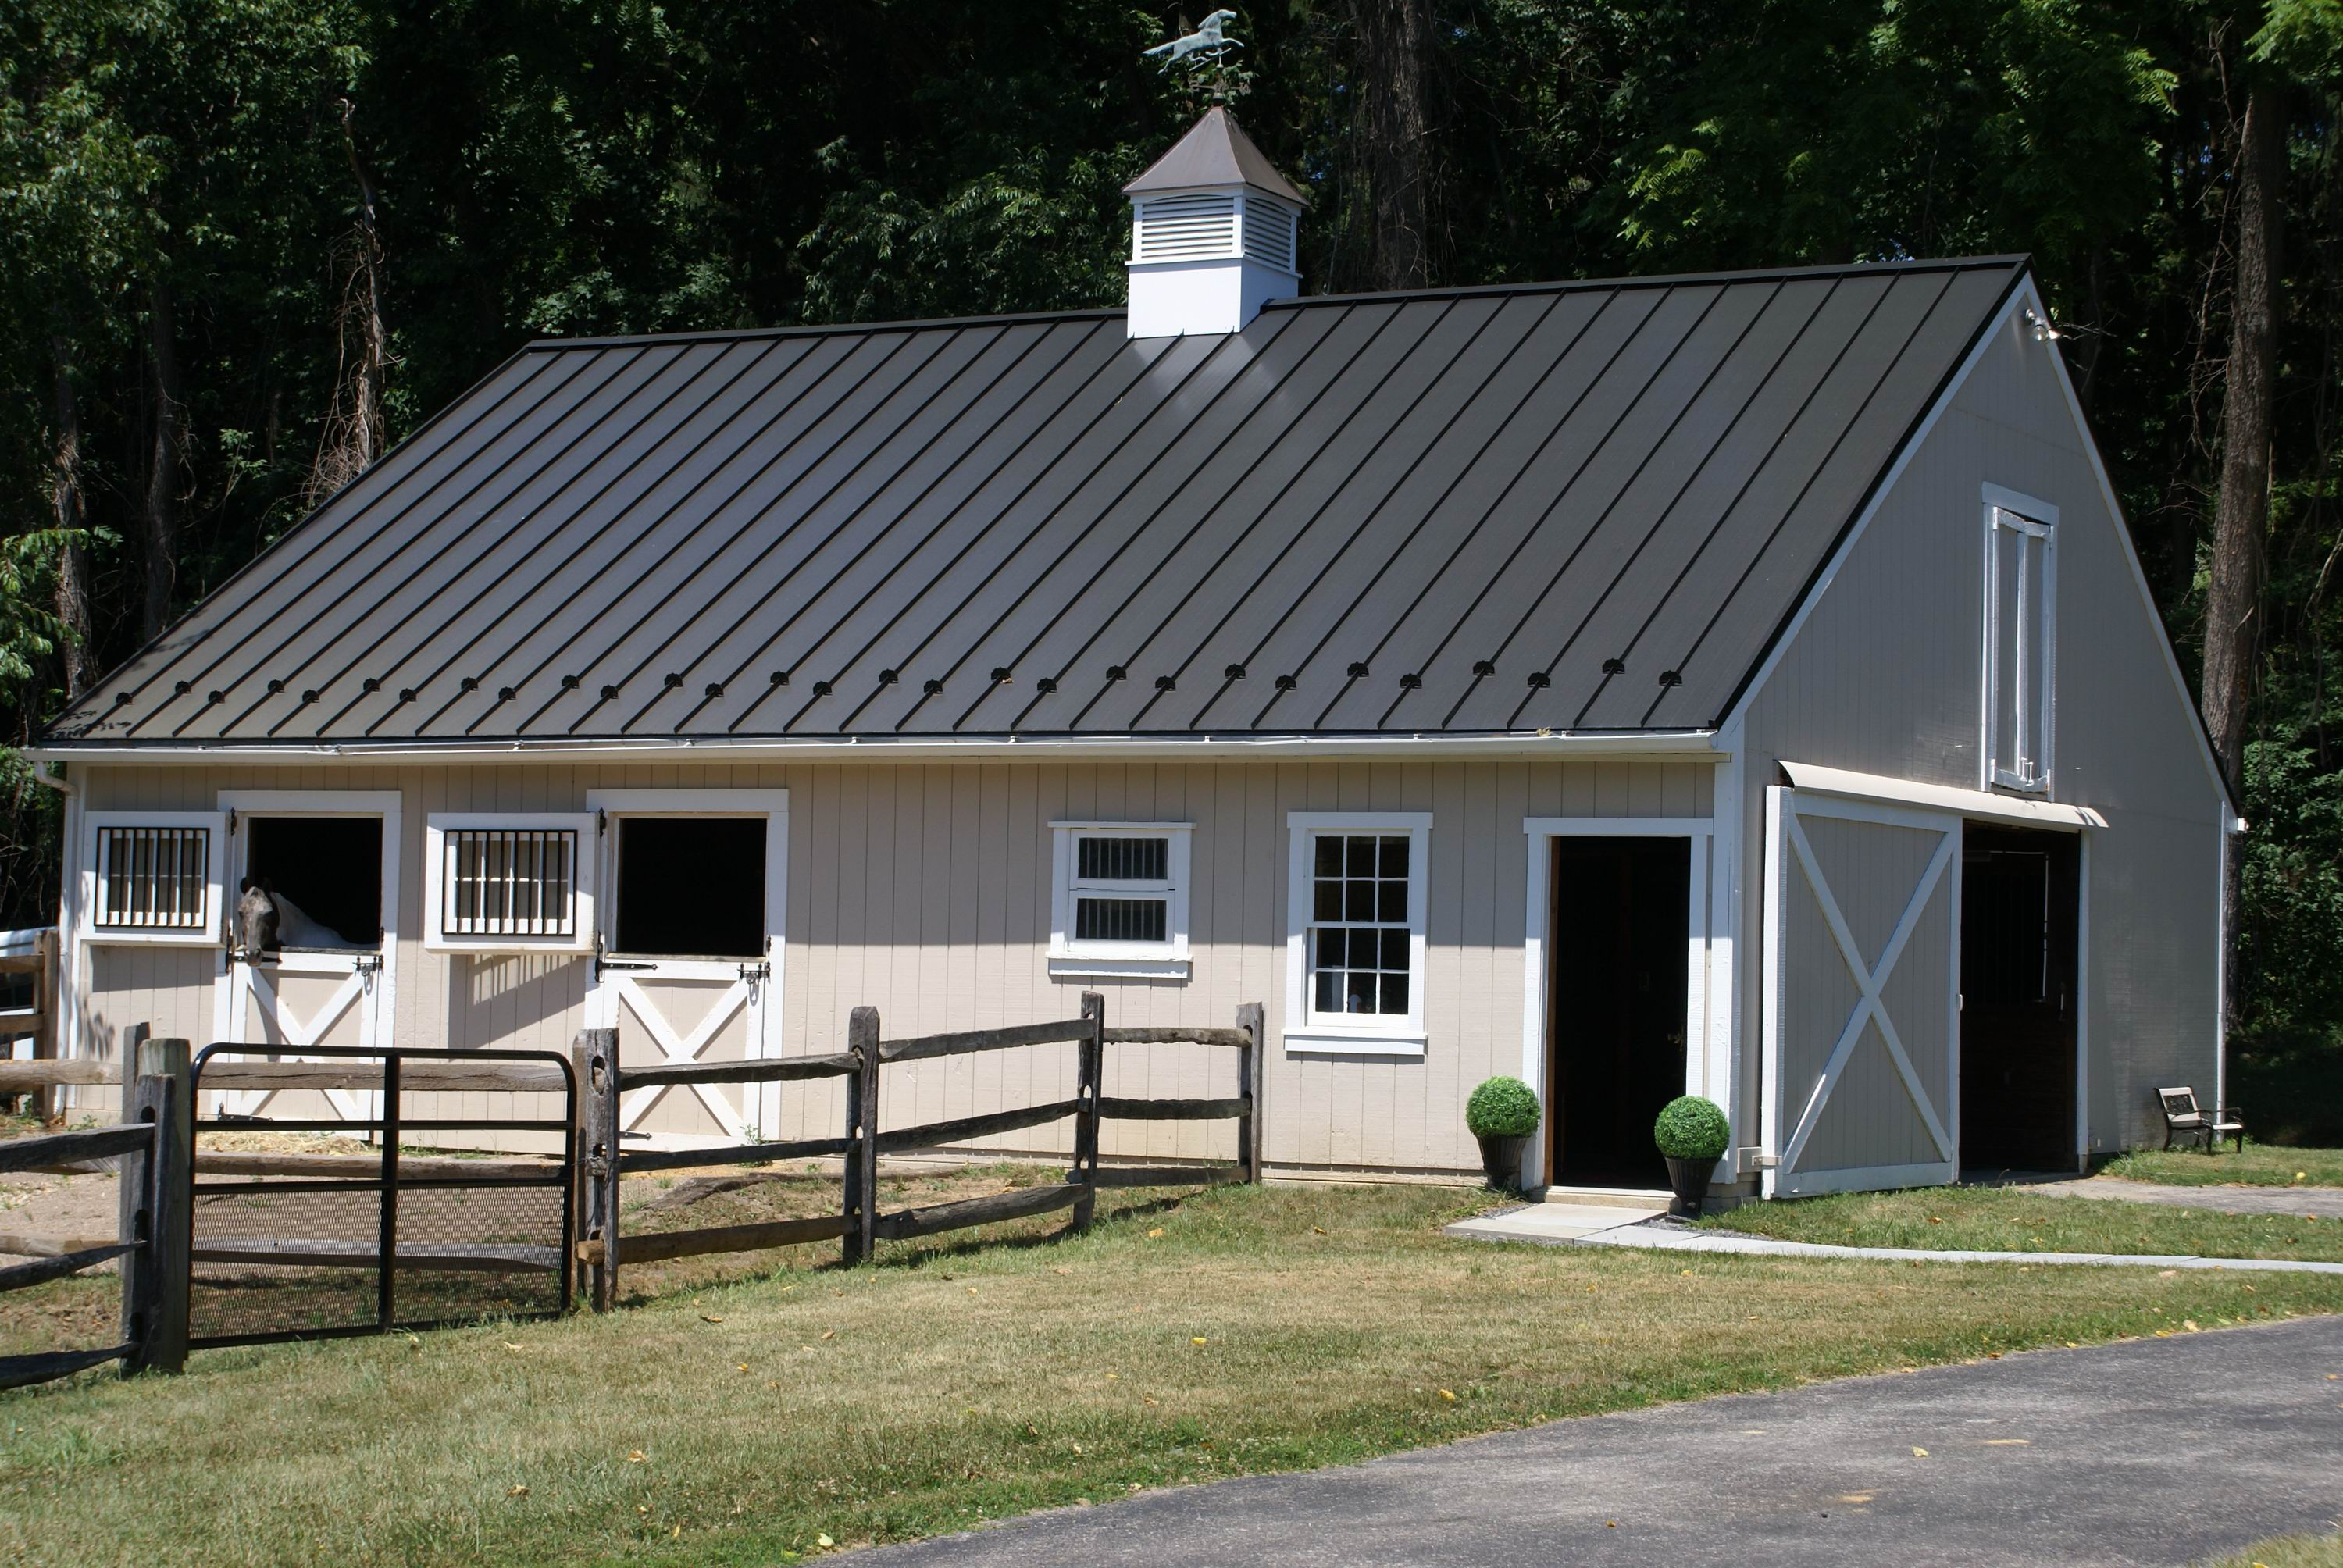 5v Crimp Metal Roof and Siding